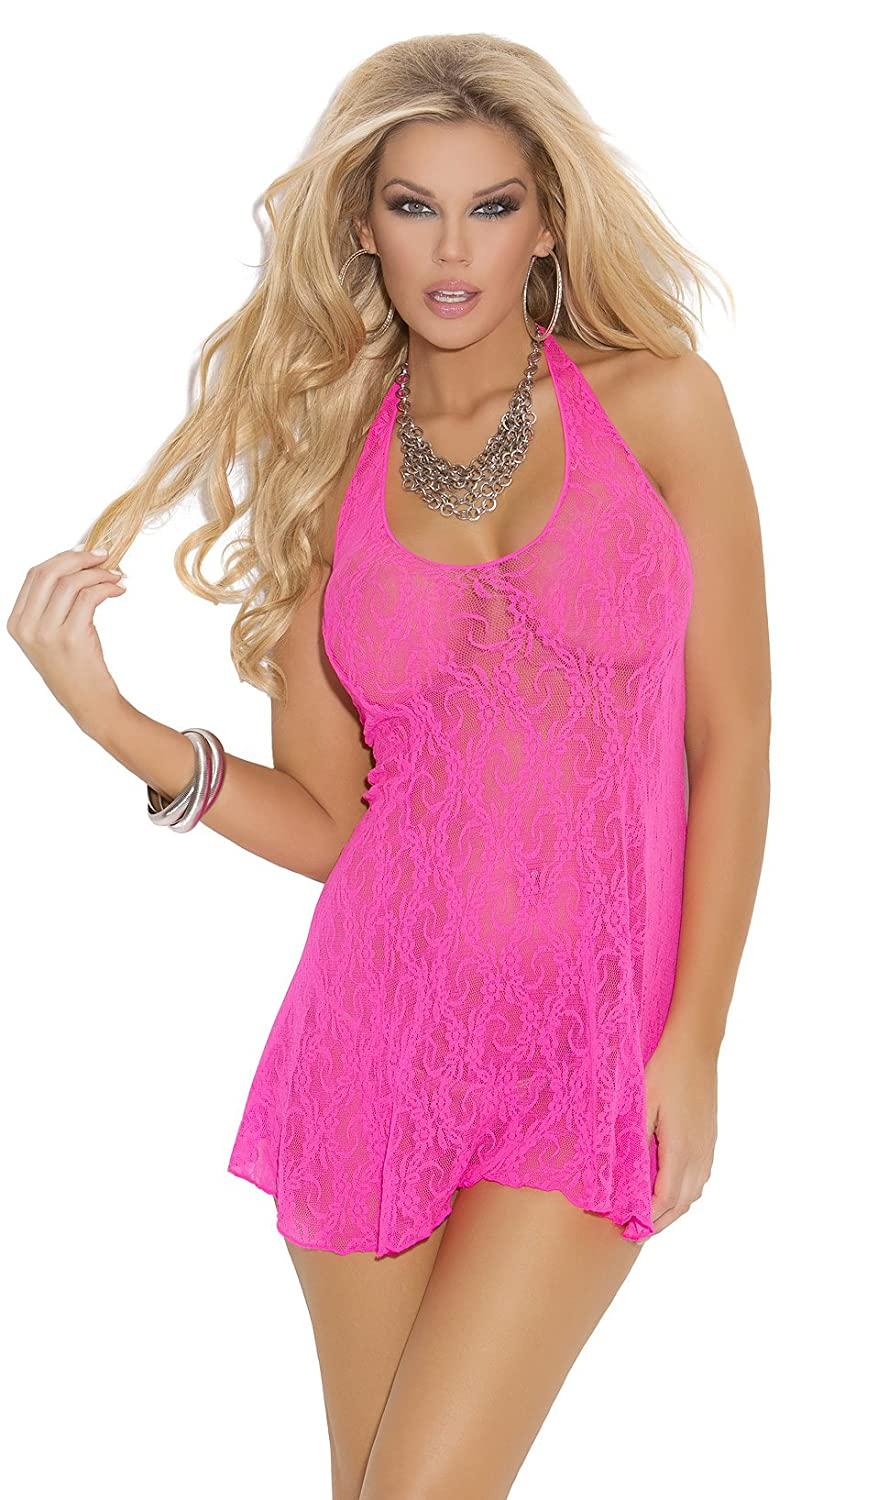 Elegant Moments Women's Lace Babydoll Nightgown (One Size, Hot Pink)